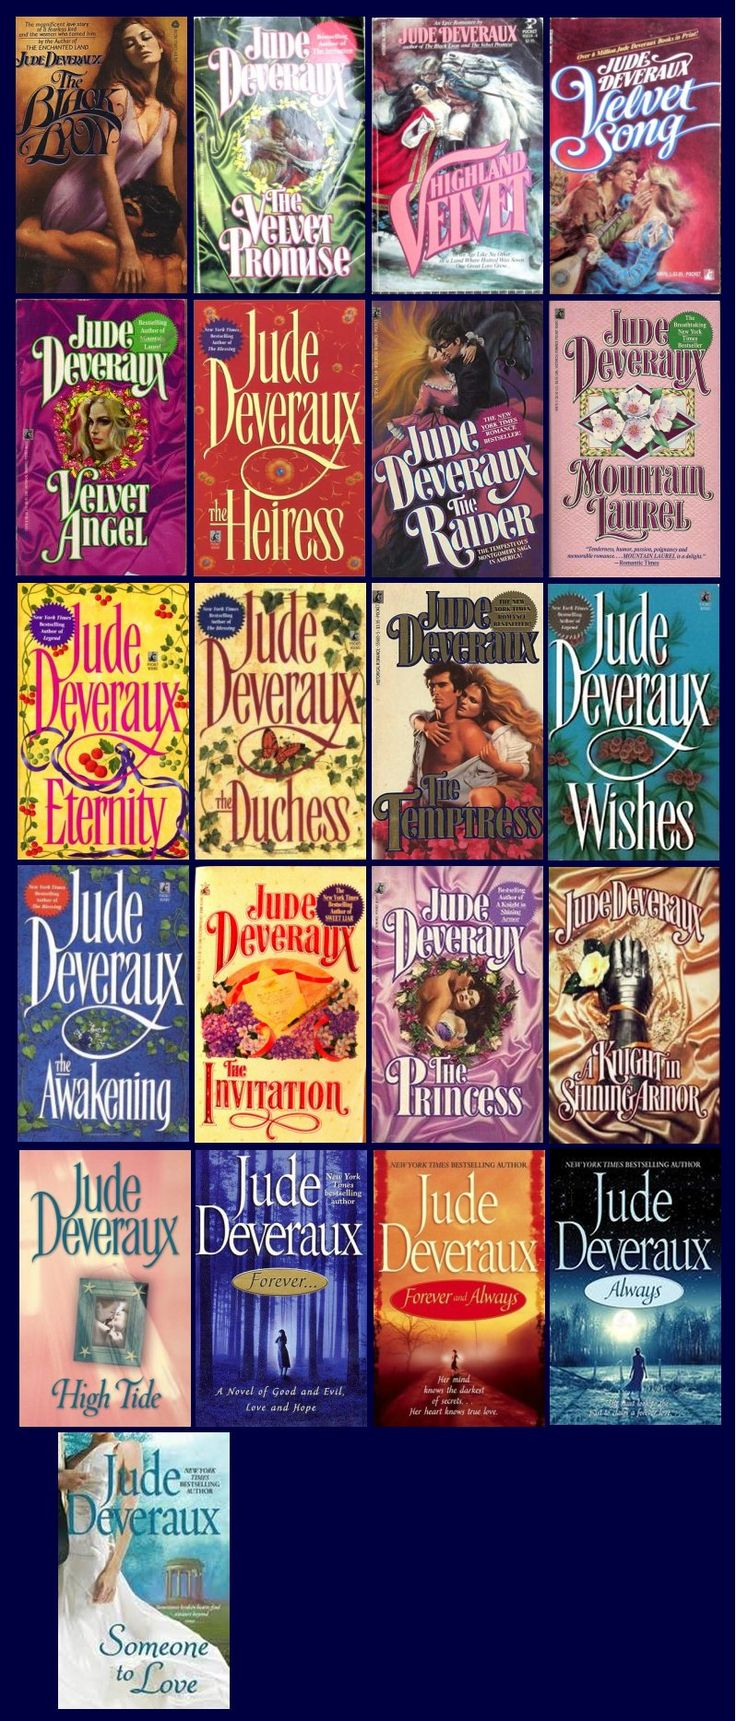 The Montgomery Series by Jude Deveraux (cover images sequential) 1980-2007